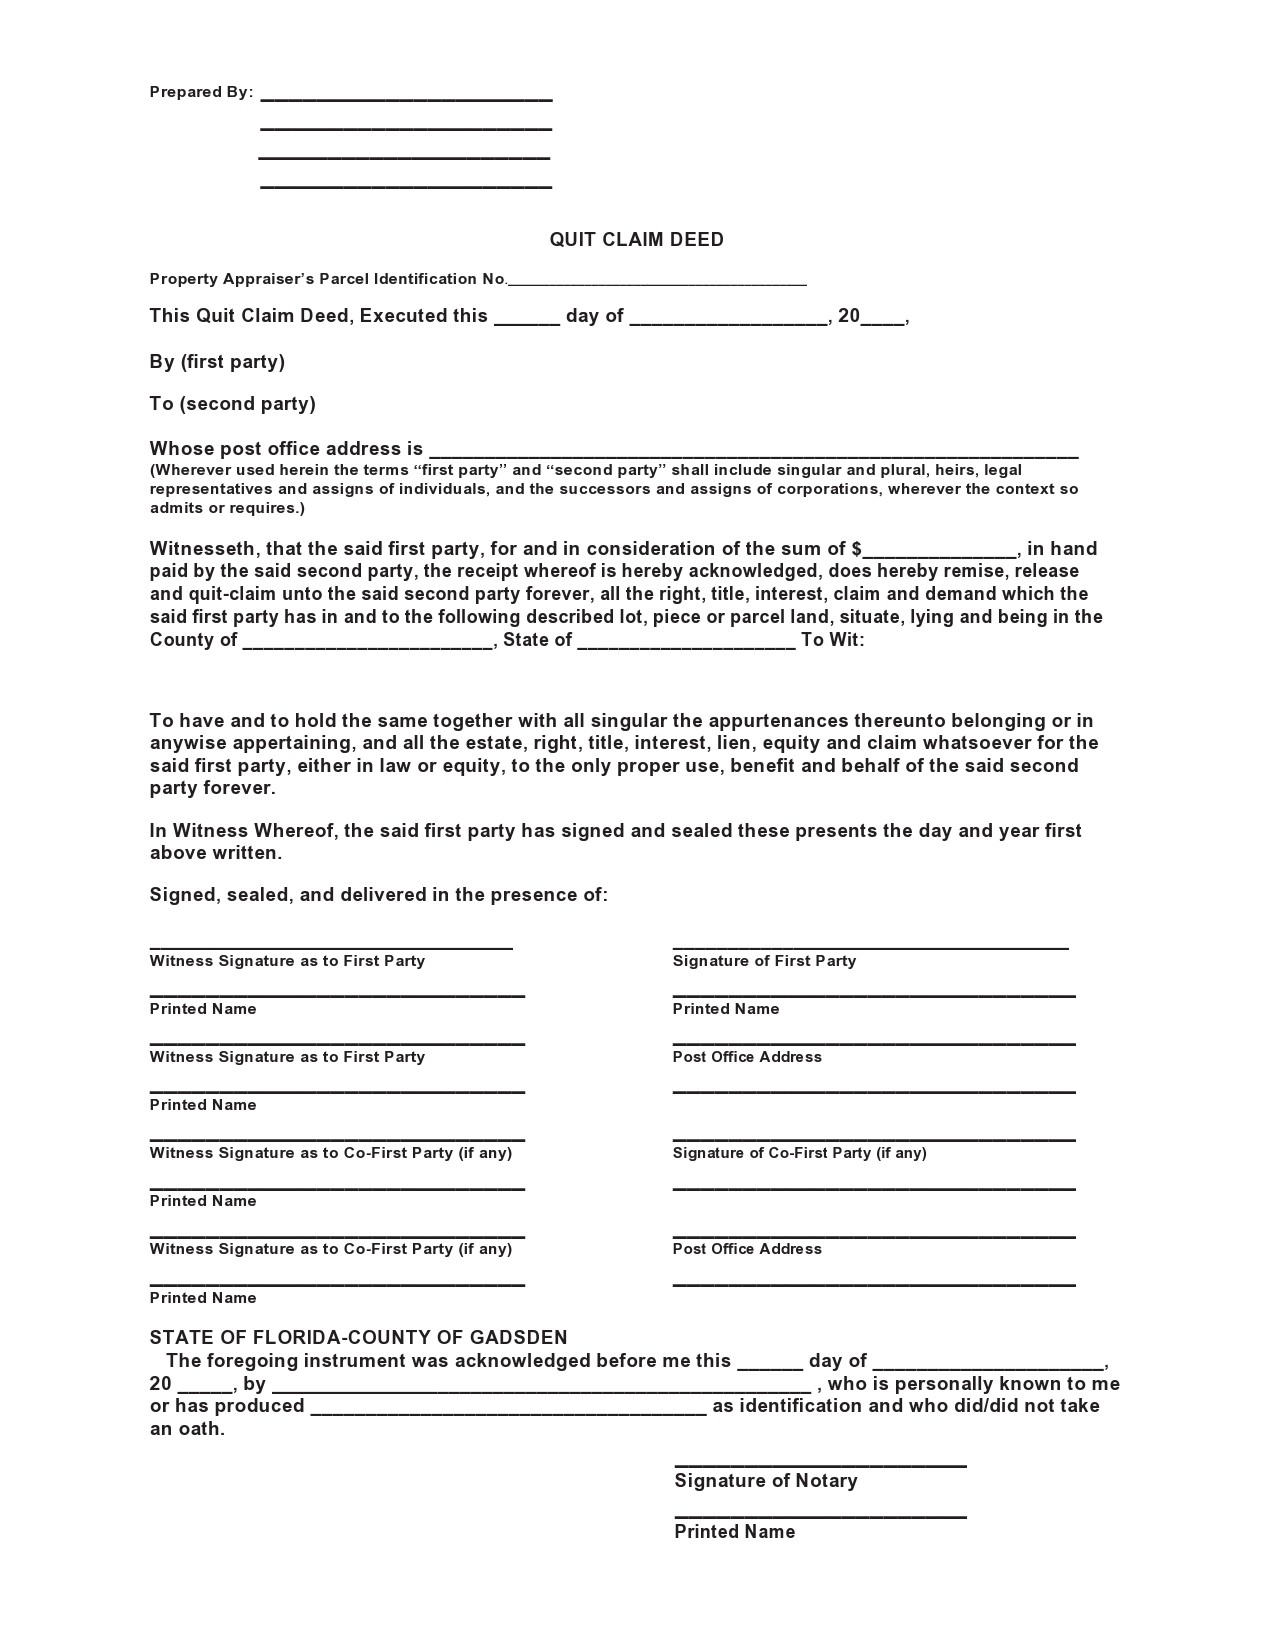 Free quit claim deed form 15